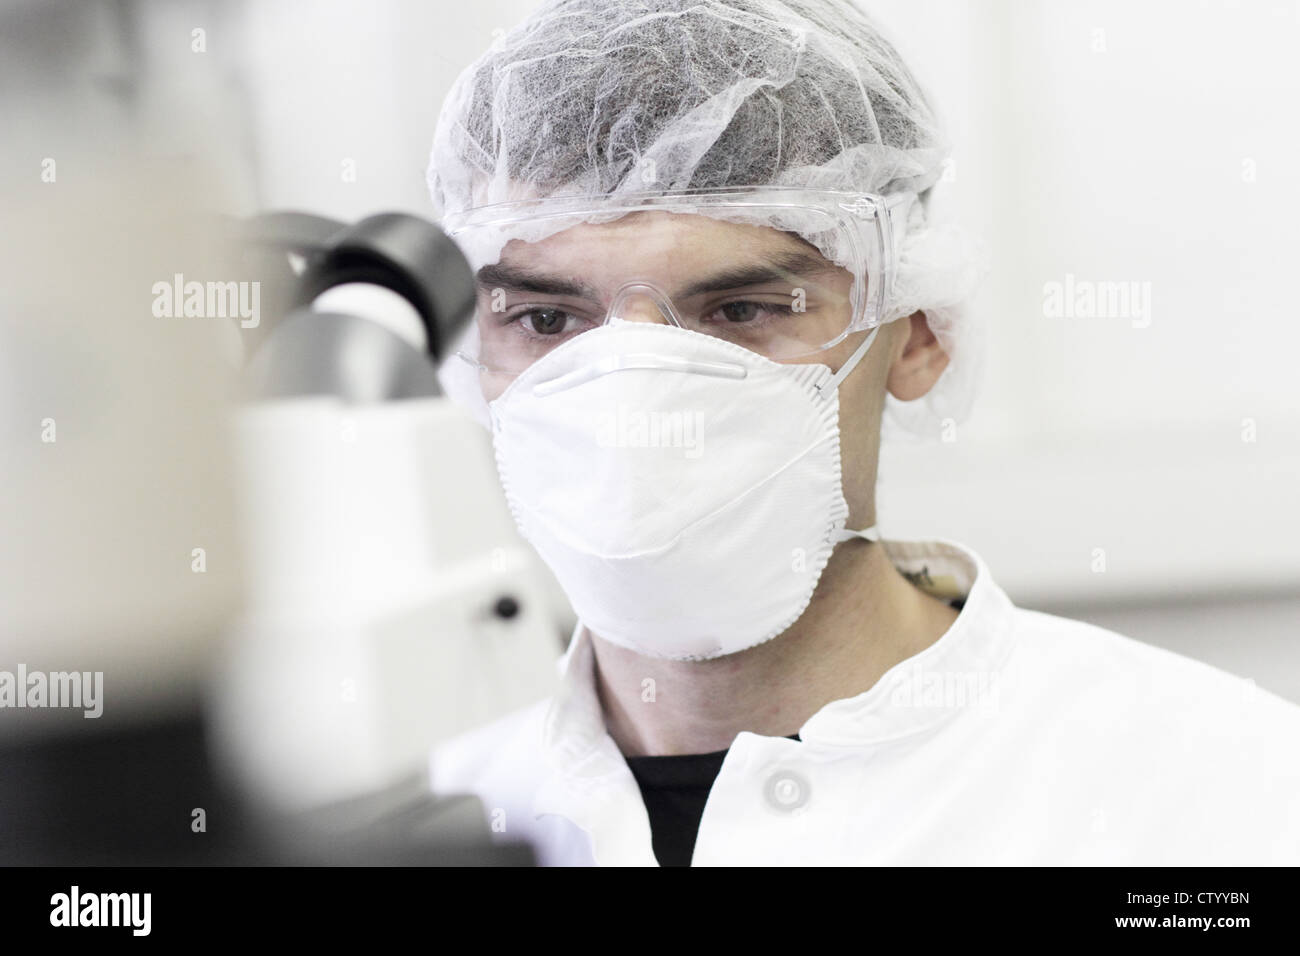 Scientist wearing facemask in lab - Stock Image